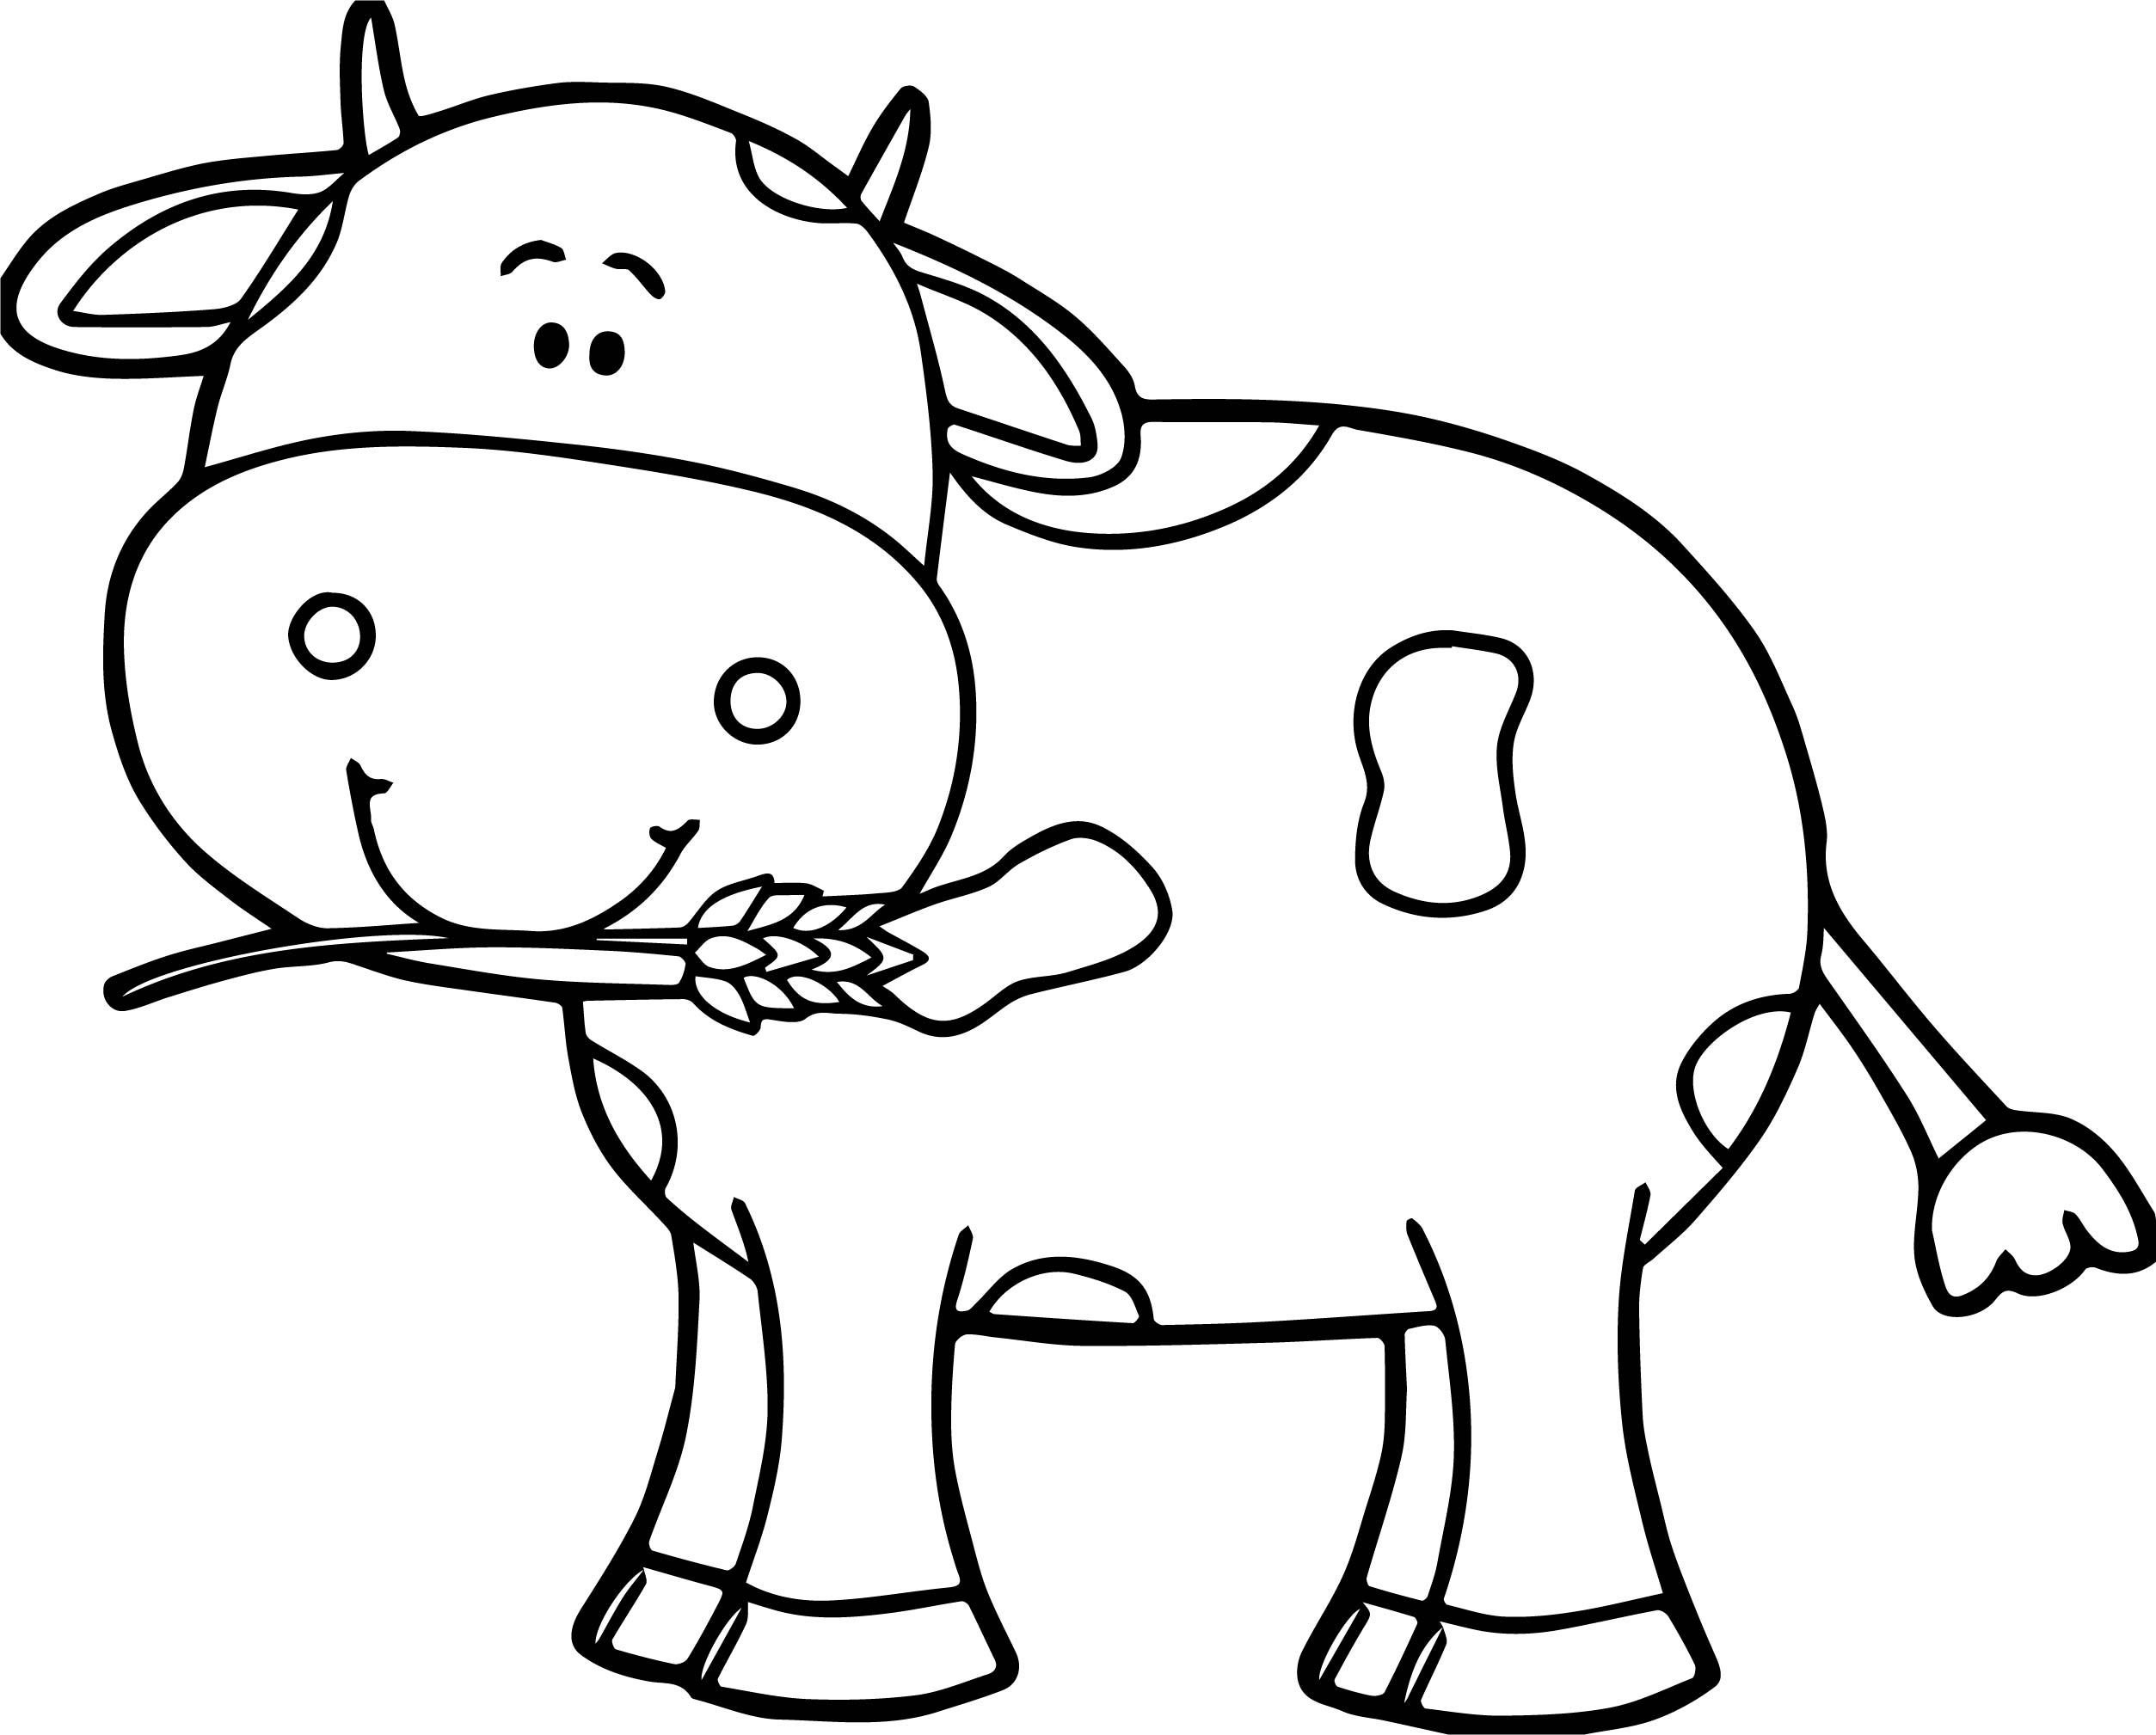 cow outline simple cow drawing at getdrawings free download outline cow